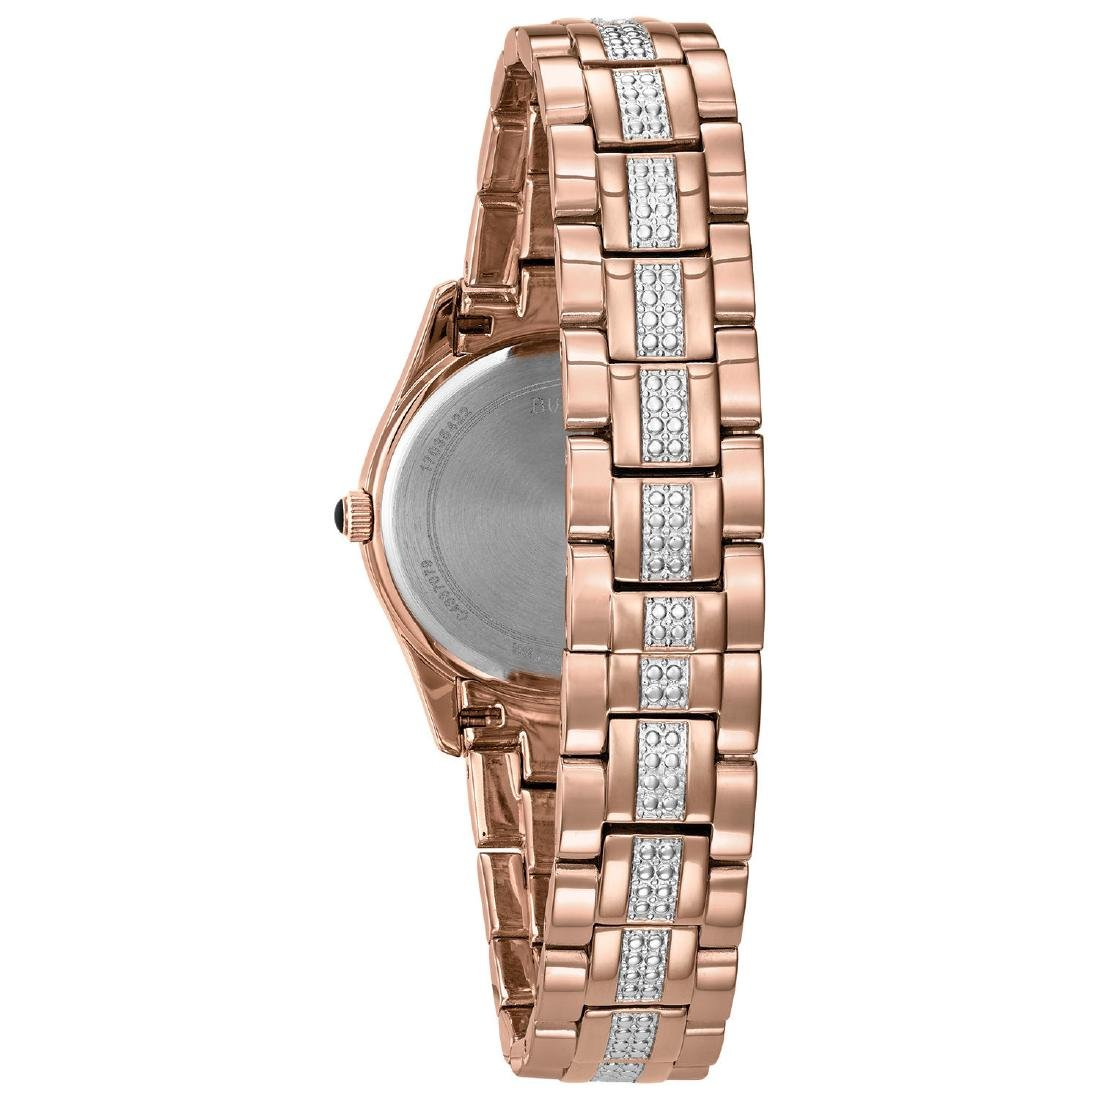 Bulova Lady's Mother of Pearl Watch - 3